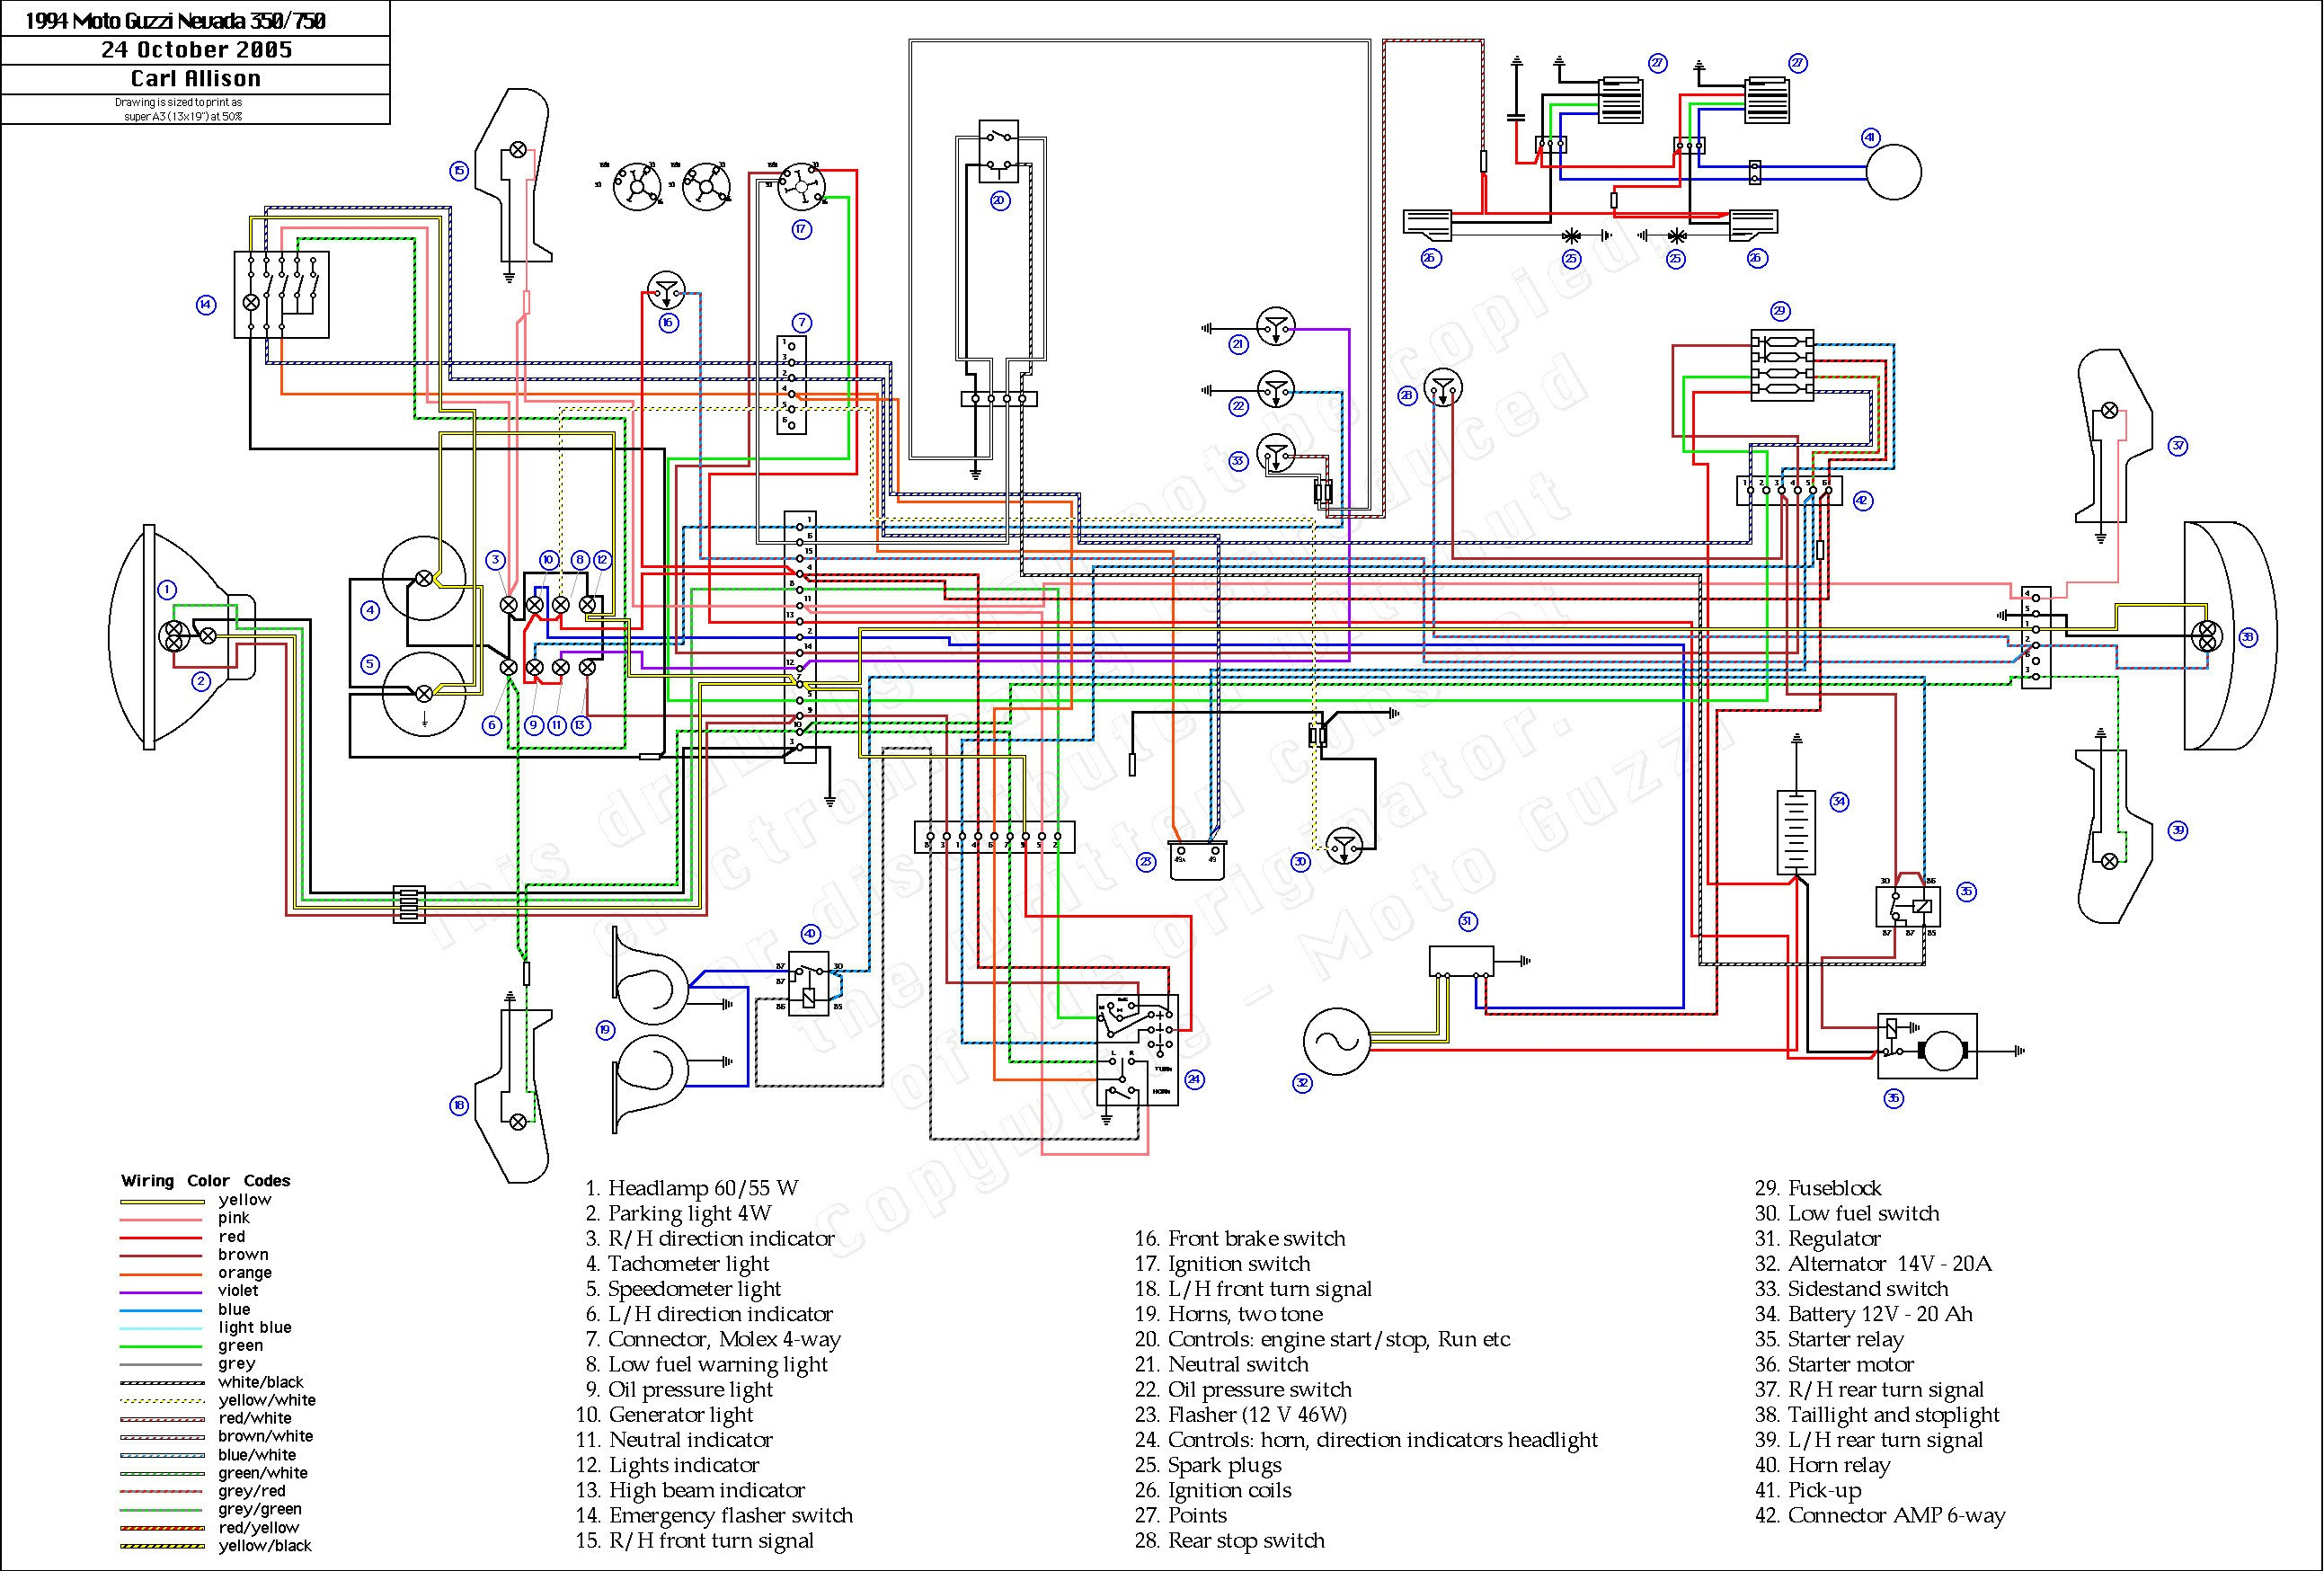 2005 Yamaha V Star 1100 Wiring Diagram - Wiring Diagram Rows on combination double switch diagram, dual battery diagram, two float switch system schematic, two battery generator diagram, dual switch diagram, marine battery switch diagram, murphy switch diagram,